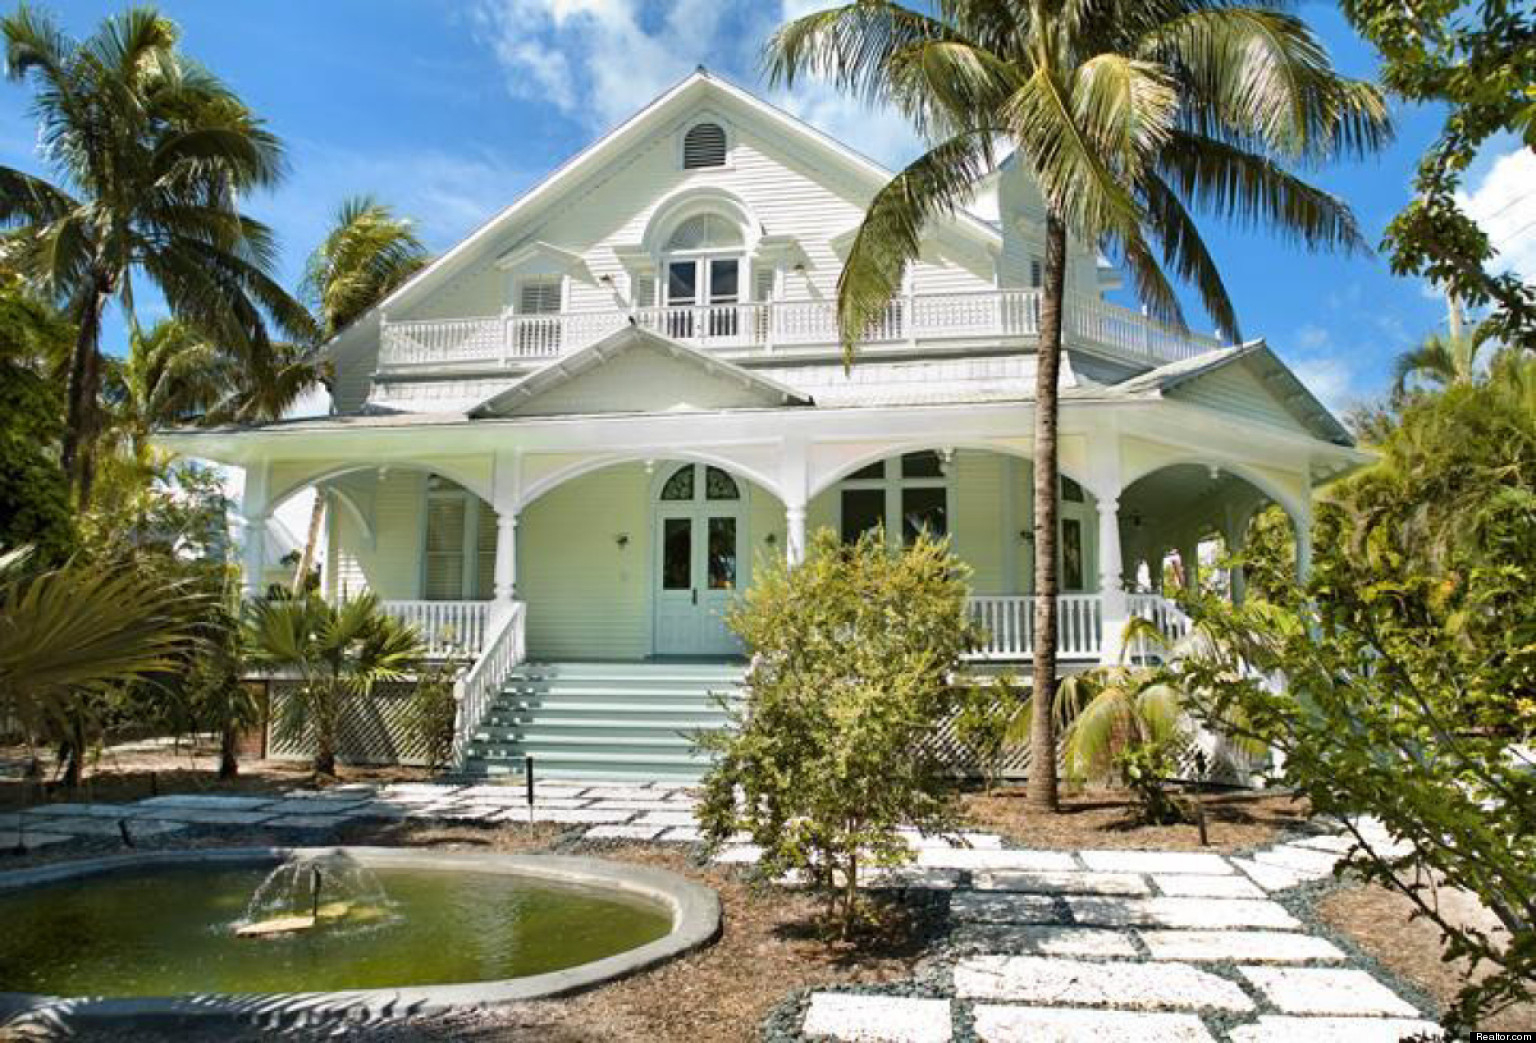 Luxury Waterfront Homes For Sale Florida Keys